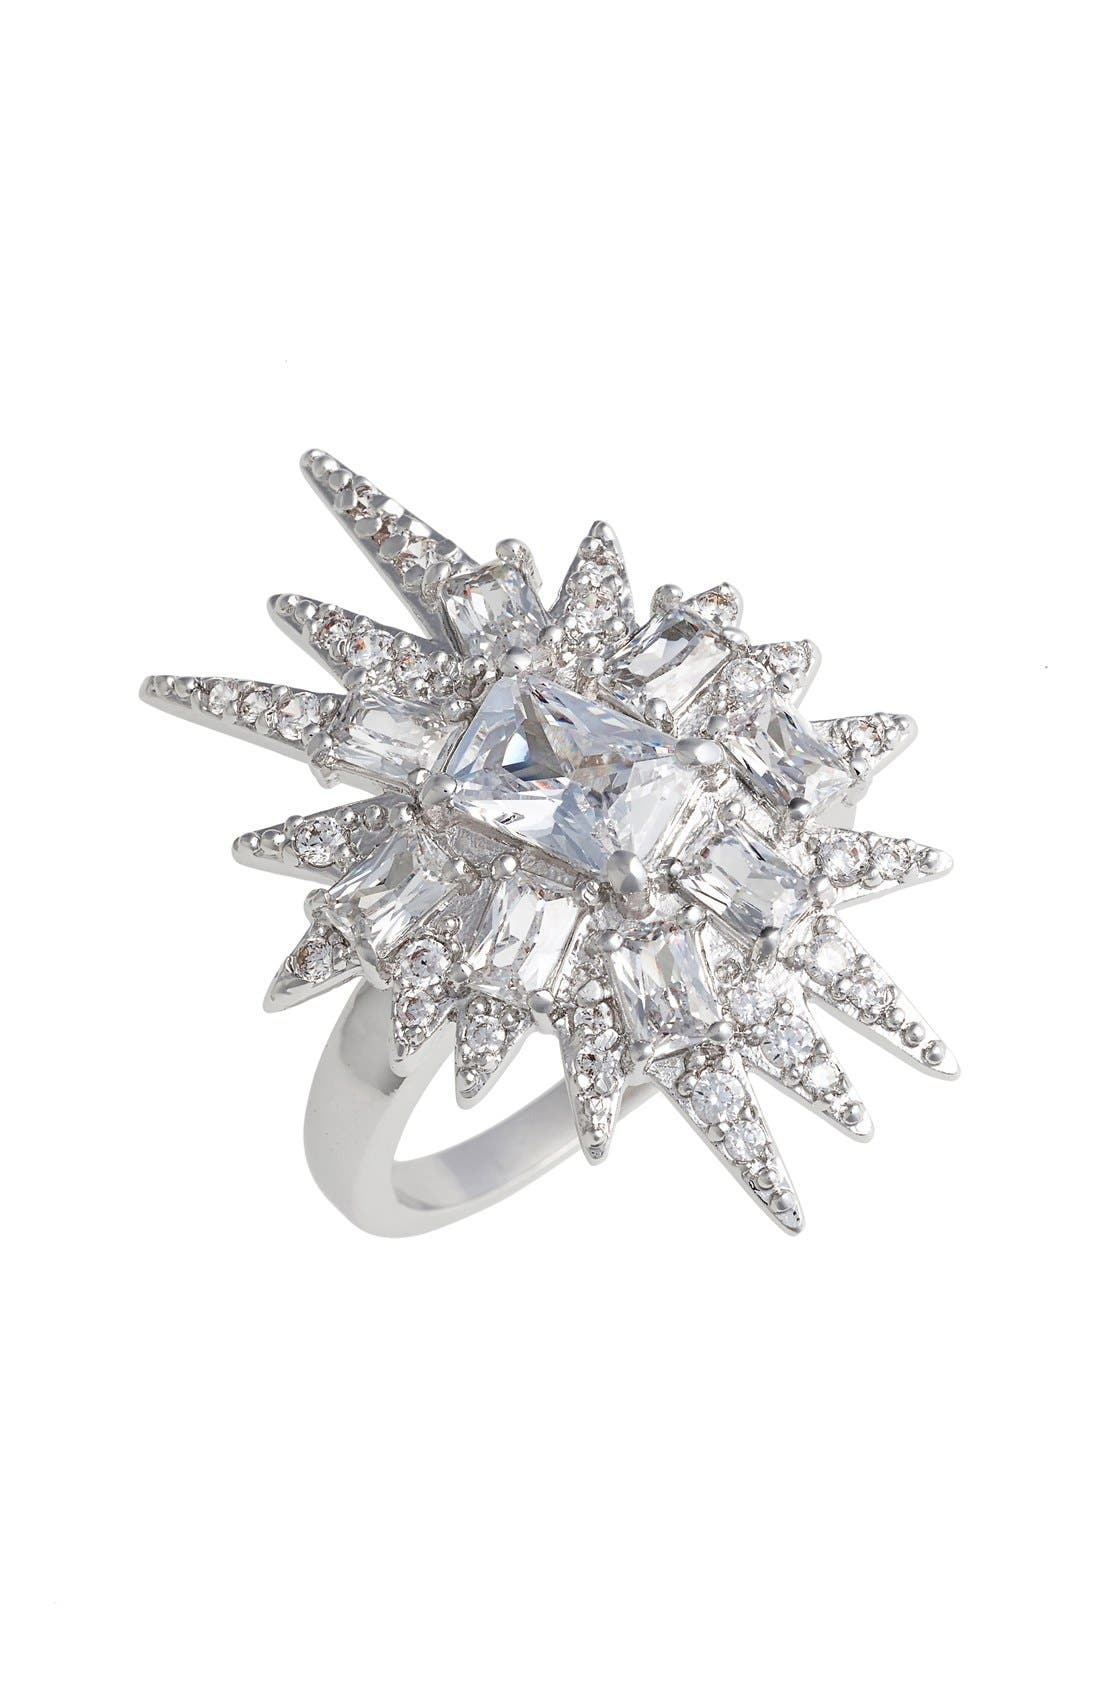 Alternate Image 1 Selected - CZ by Kenneth Jay Lane 'Explosion' Cubic Zirconia Cocktail Ring